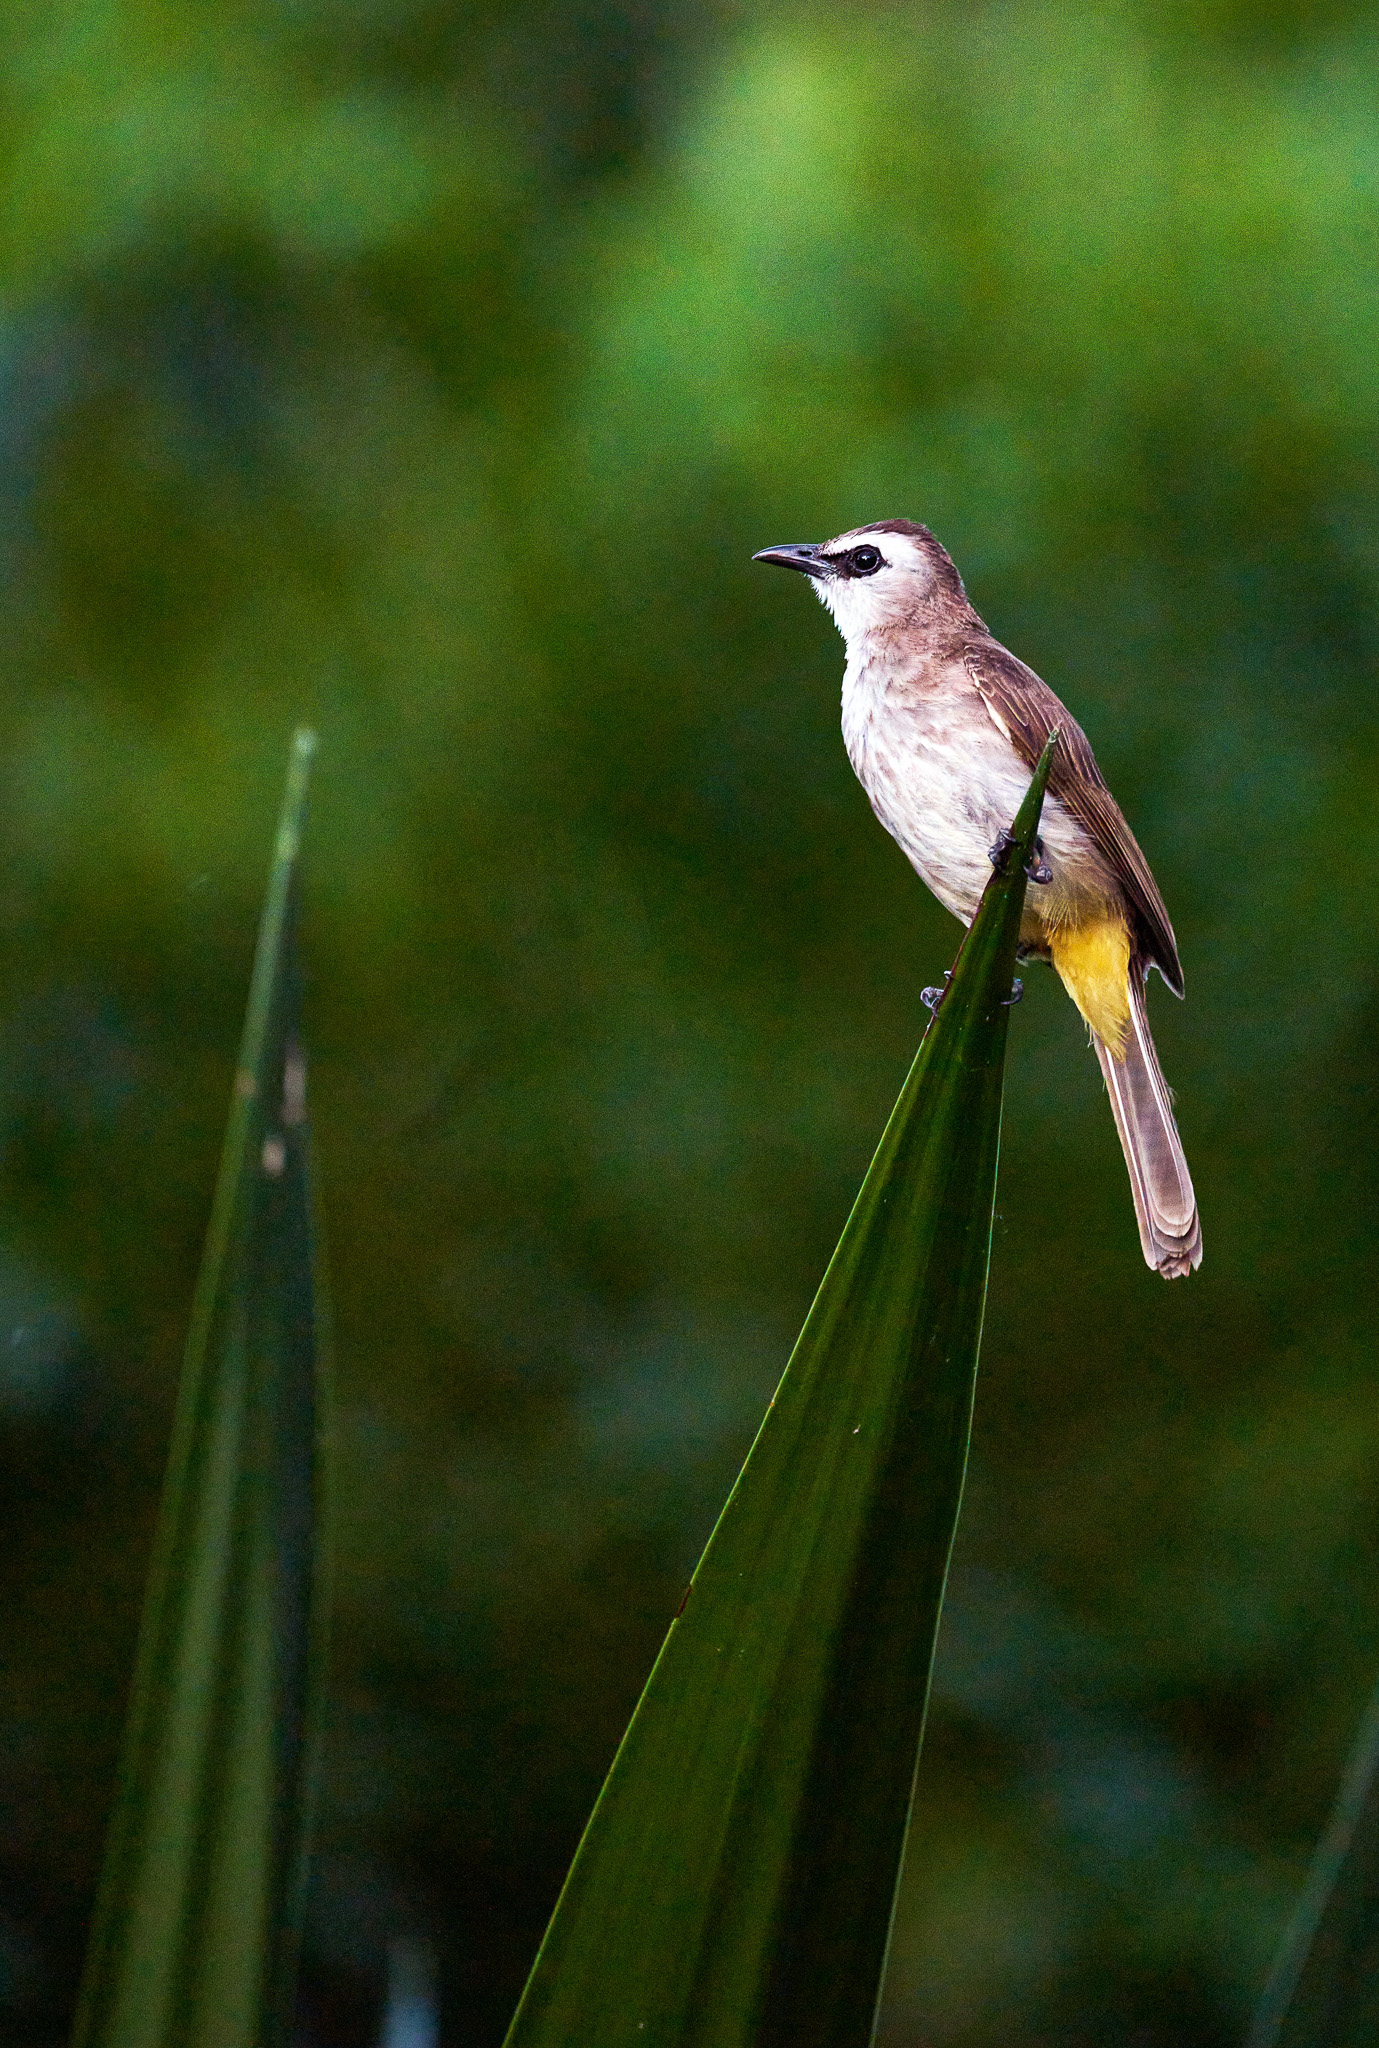 A Yellow-vented Bulbul at Hort Park, Singapore